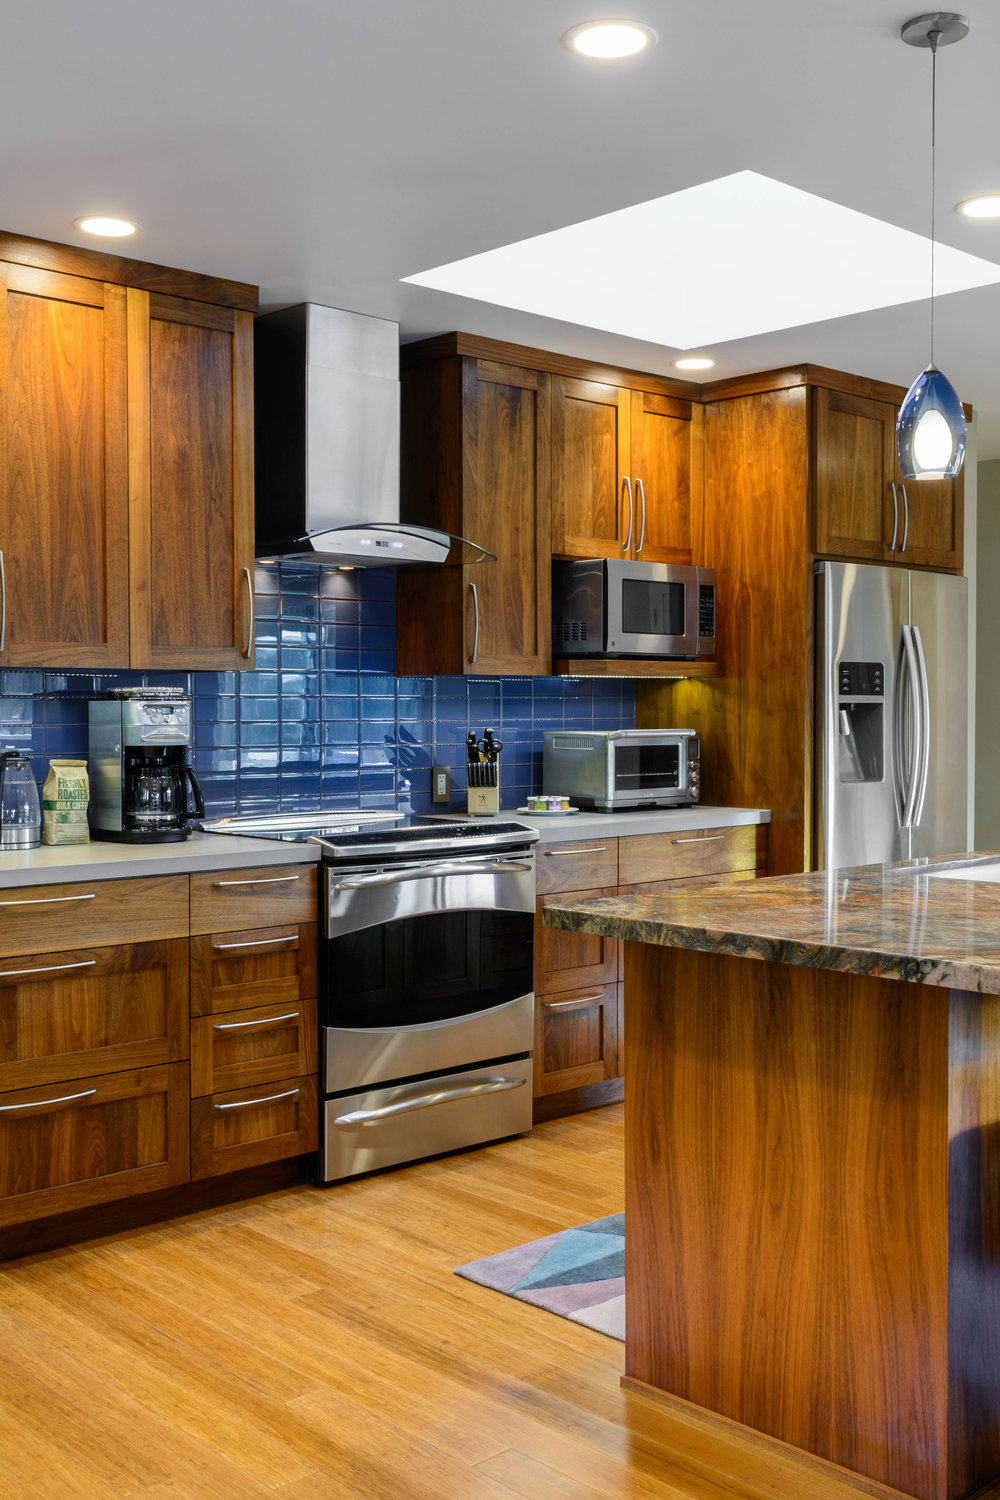 Contemporary kitchen lighting: skylights, pendants lights, LED recessed lighting and under cabinet lighting